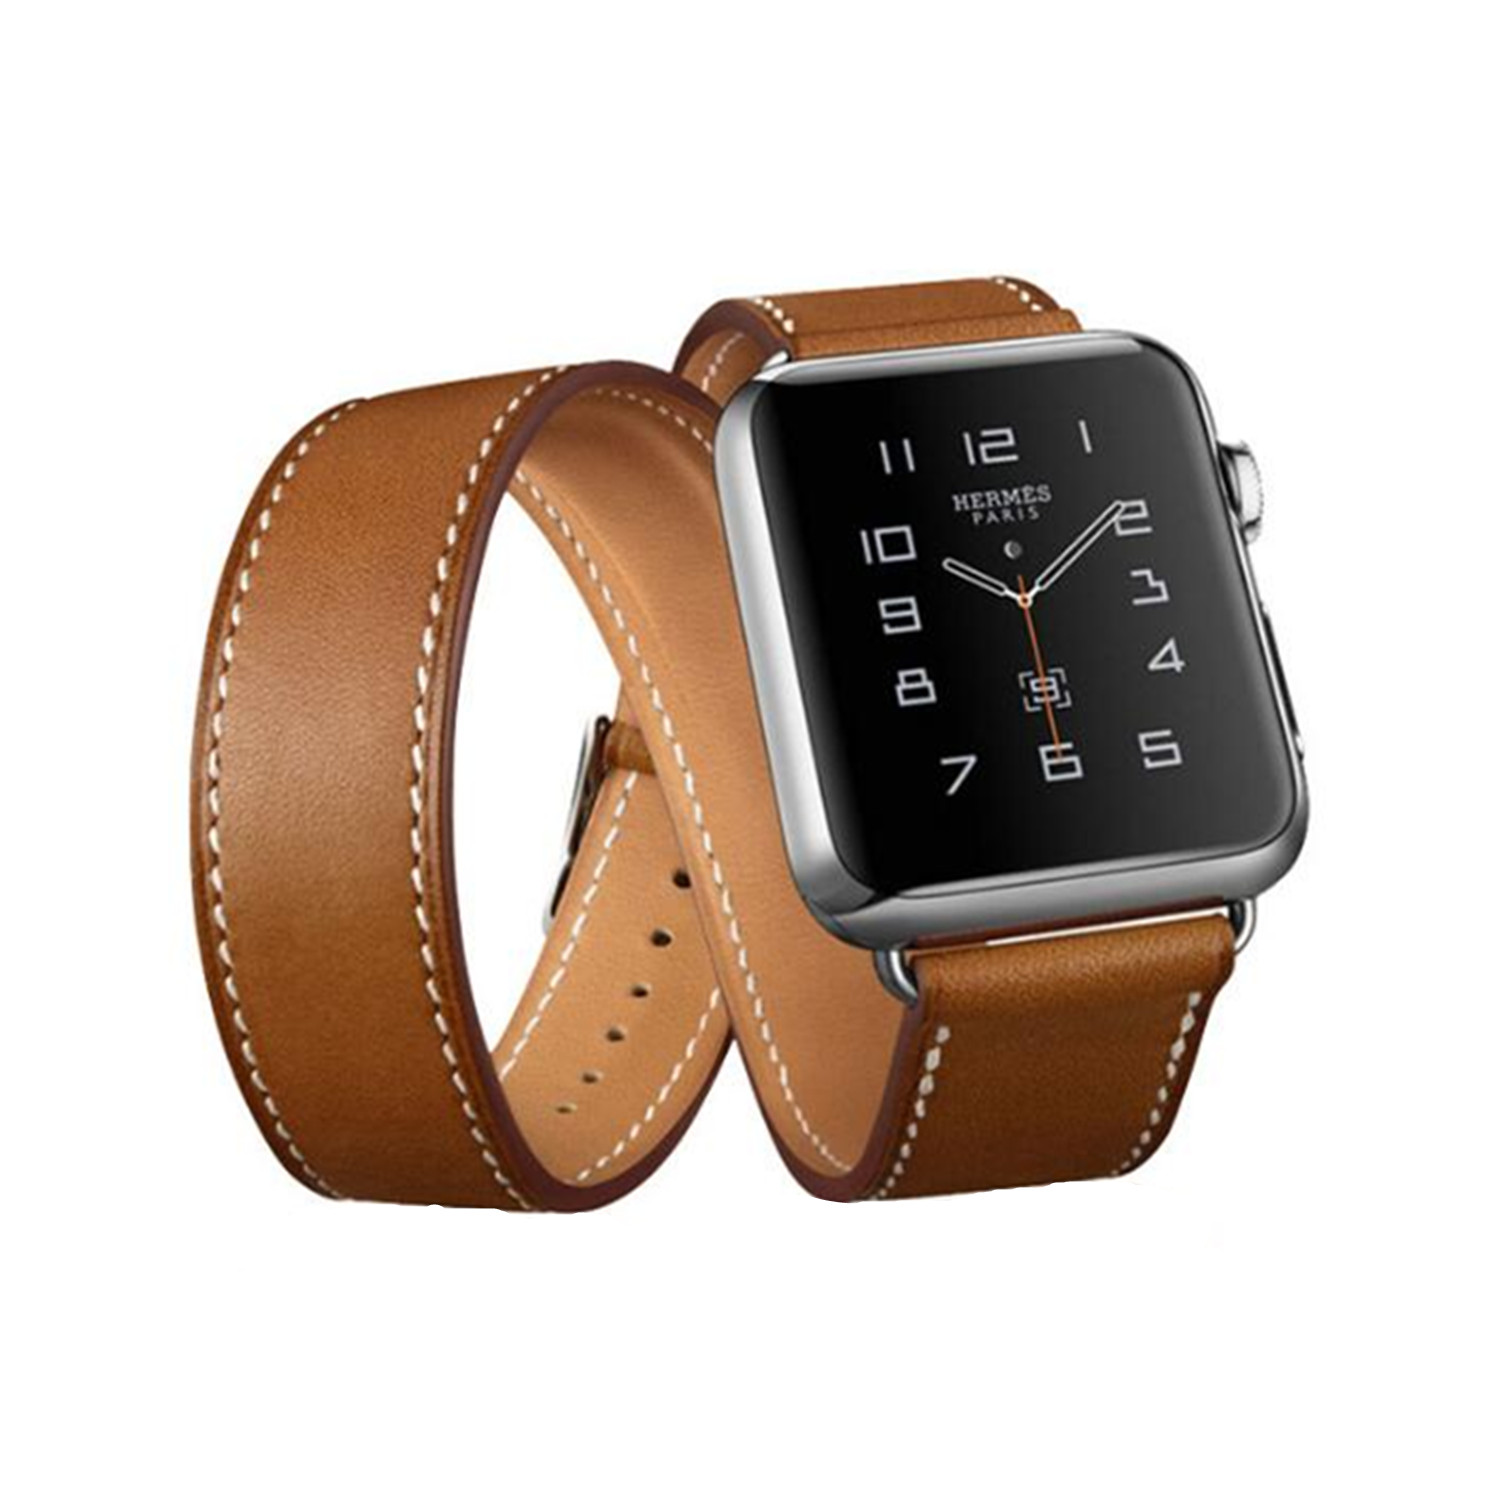 Genuine Leather watchband watch band strap for hermes apple watch 42mm 38mm  bracelet clasp bucklel eather strap watch men brown 4643b74bf1c